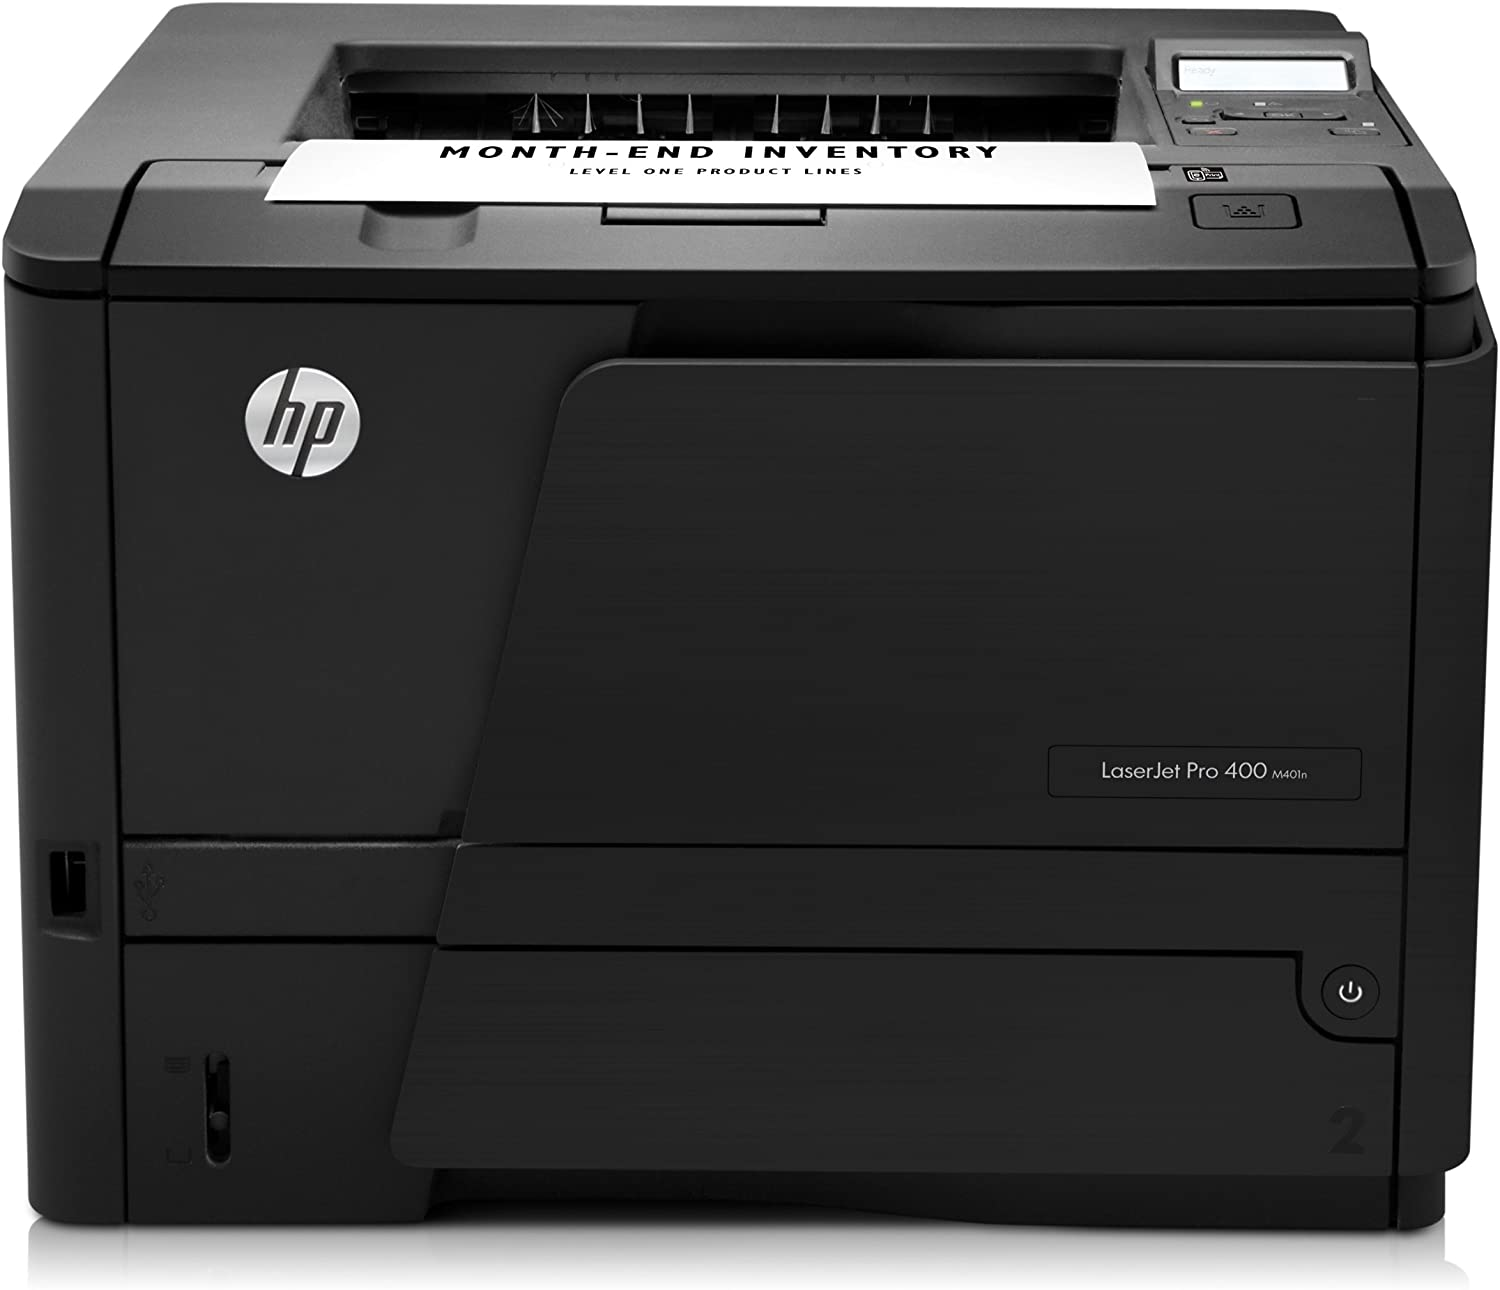 HP LaserJet Pro 400 M401n Monochrome Printer (CZ195A) (Discontinued By Manufacturer)